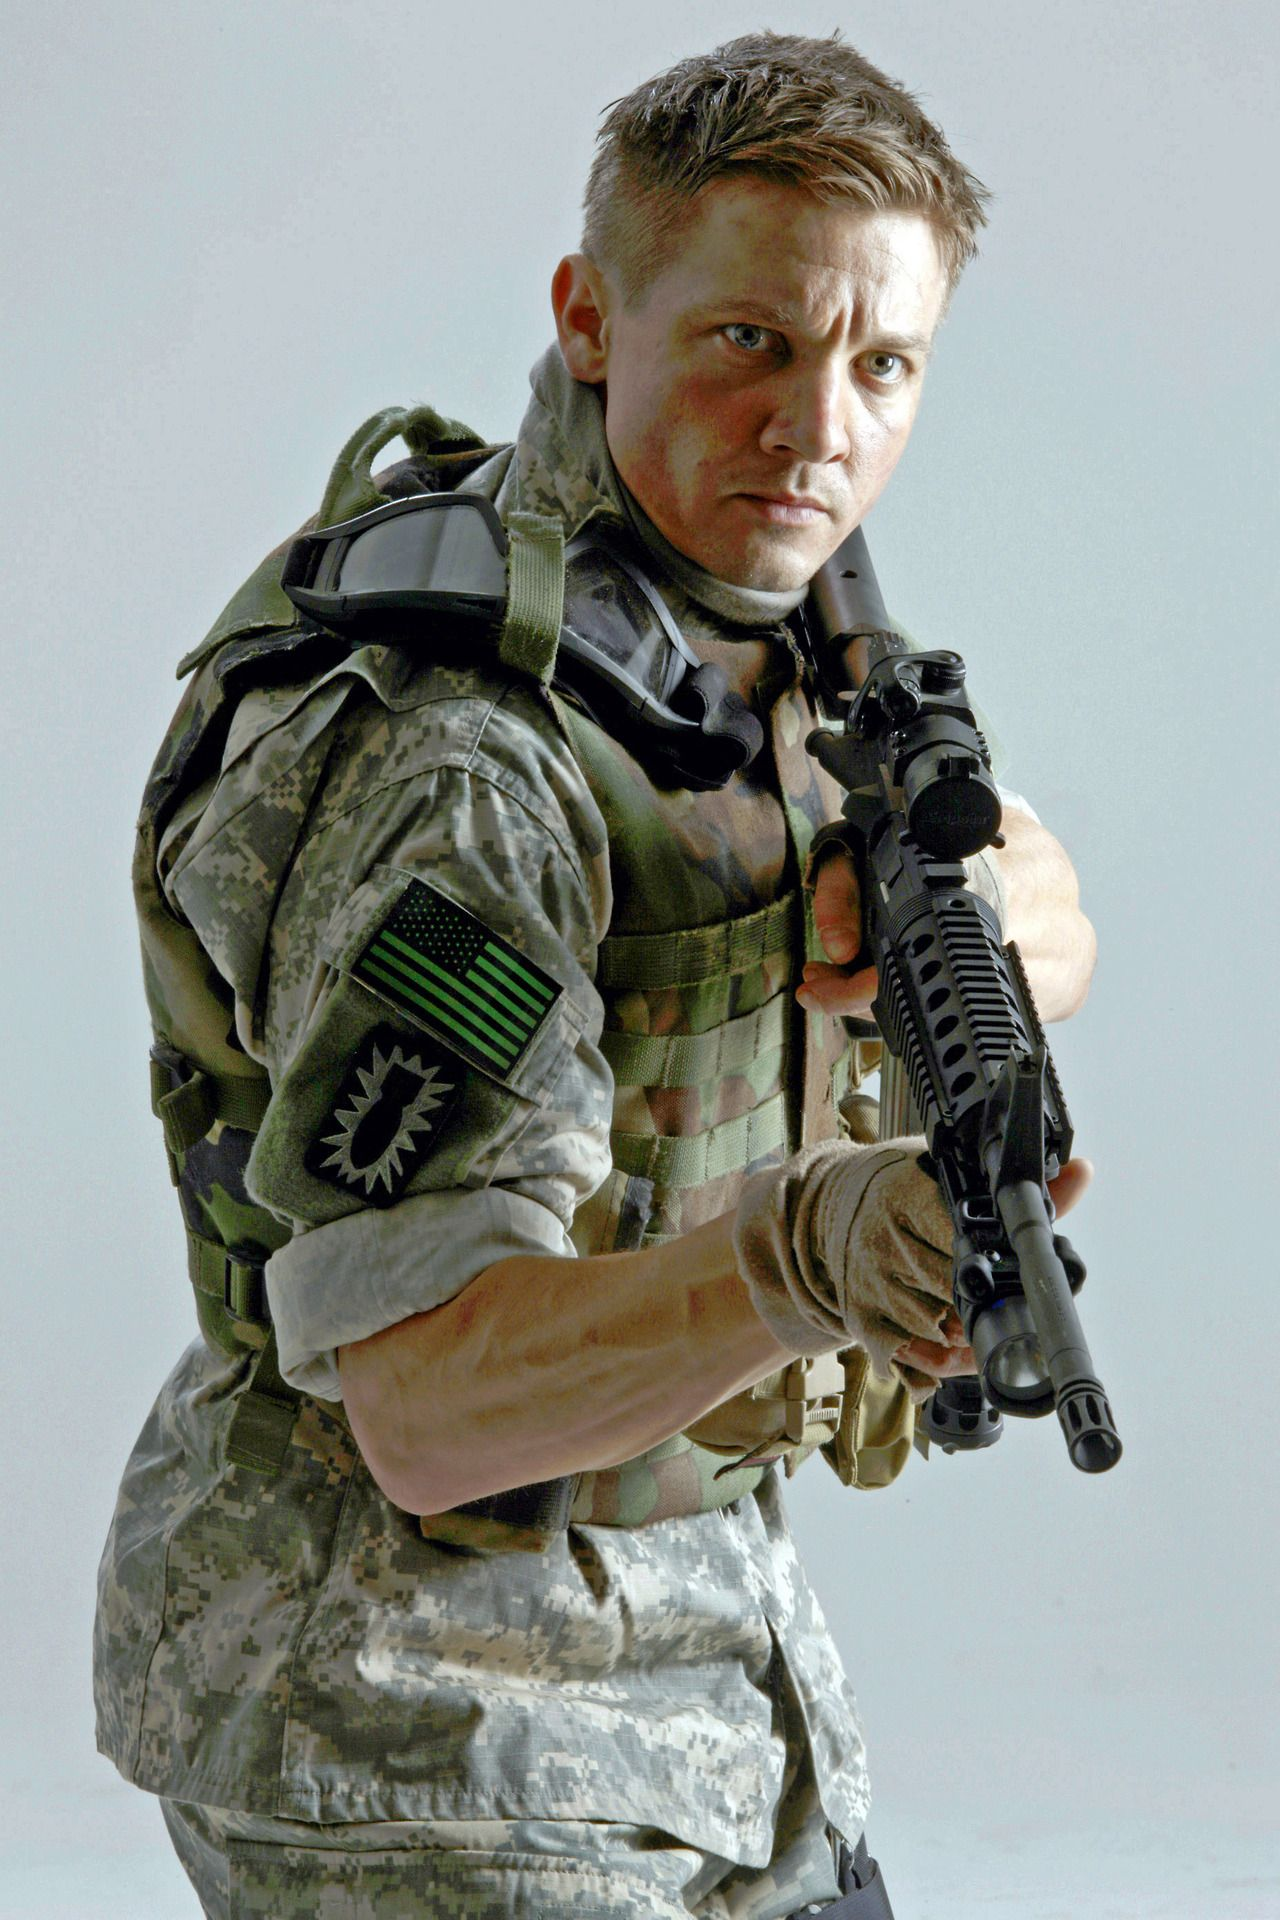 Jeremy Renner as Sergeant William James in The Hurt Locker